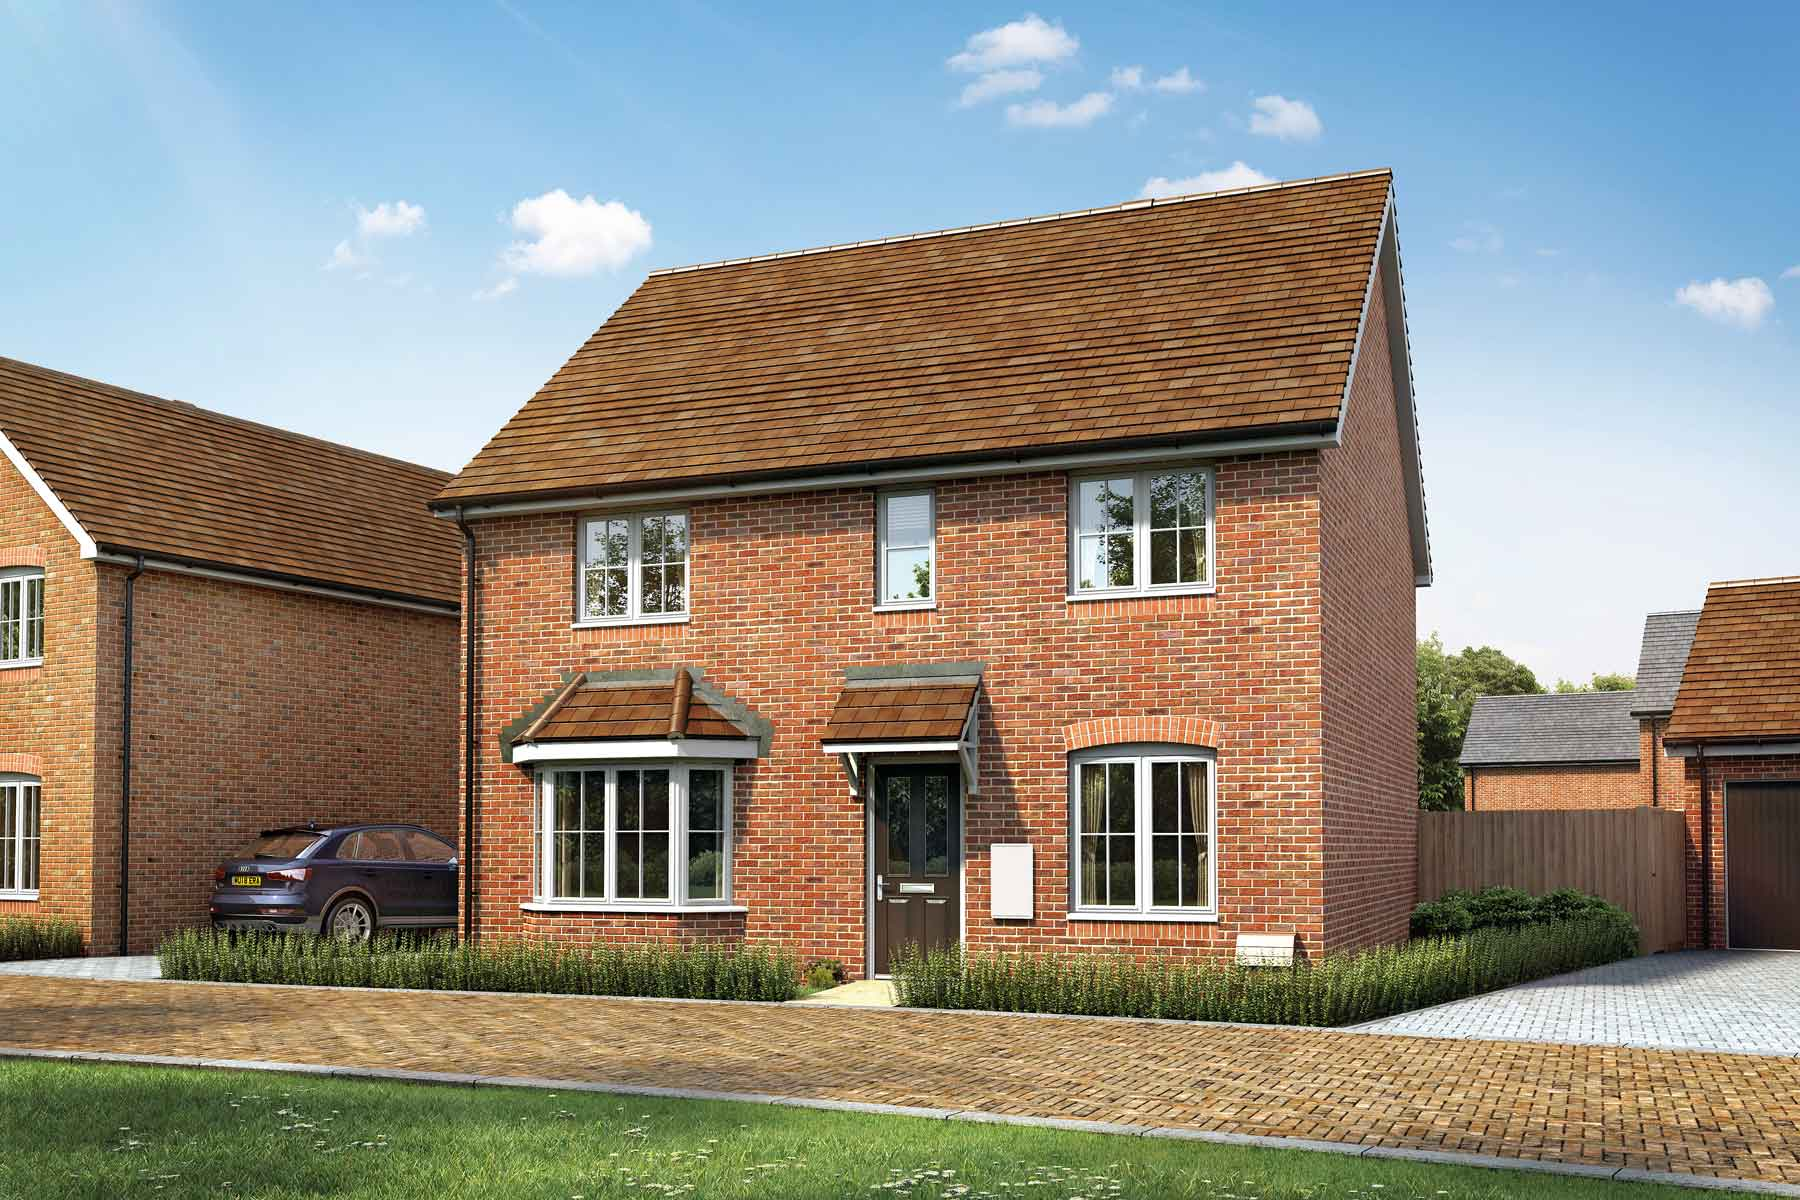 Artist's impression of a typical Manford home